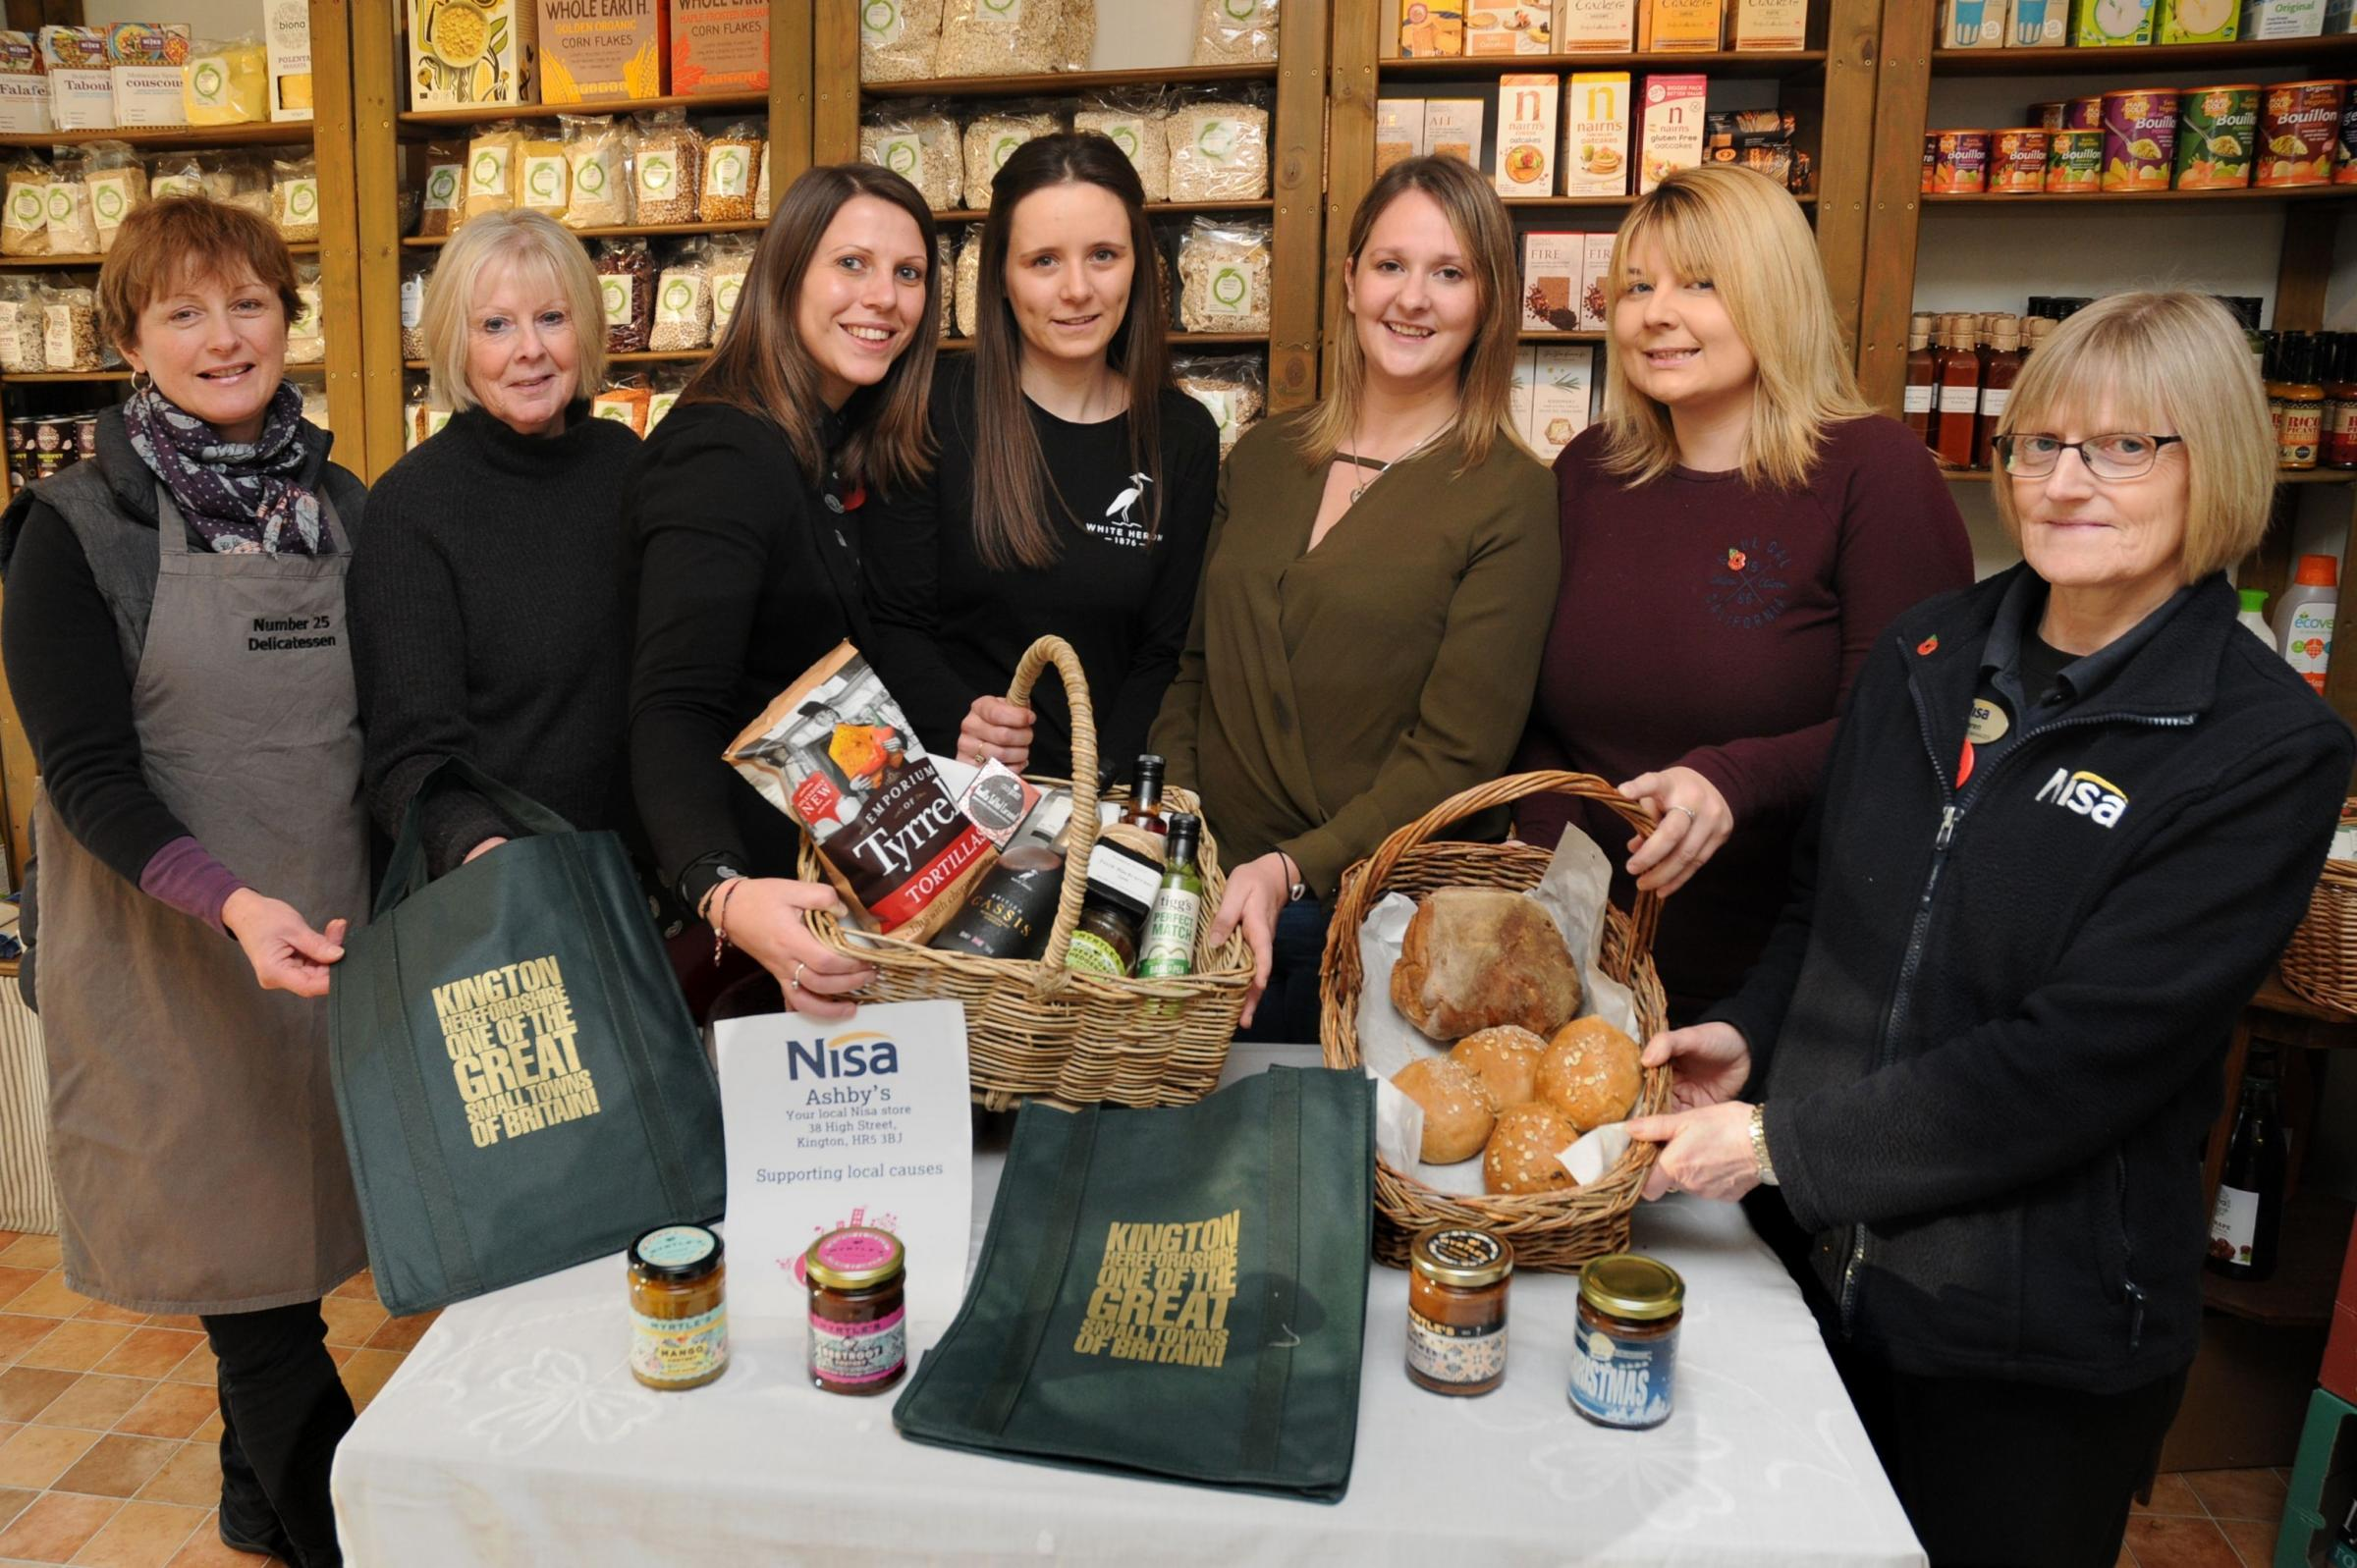 Preparing for Kington Festive Food and Drink Festival are (l-r) Helen Yeomans from Number 25 Delicatessen, Kington Food Festival organiser Pam Peek, Robyn Twiddy from Russell Baldwin and Bright, Laura Betts from British Cassis, Megan Mather from Russell B